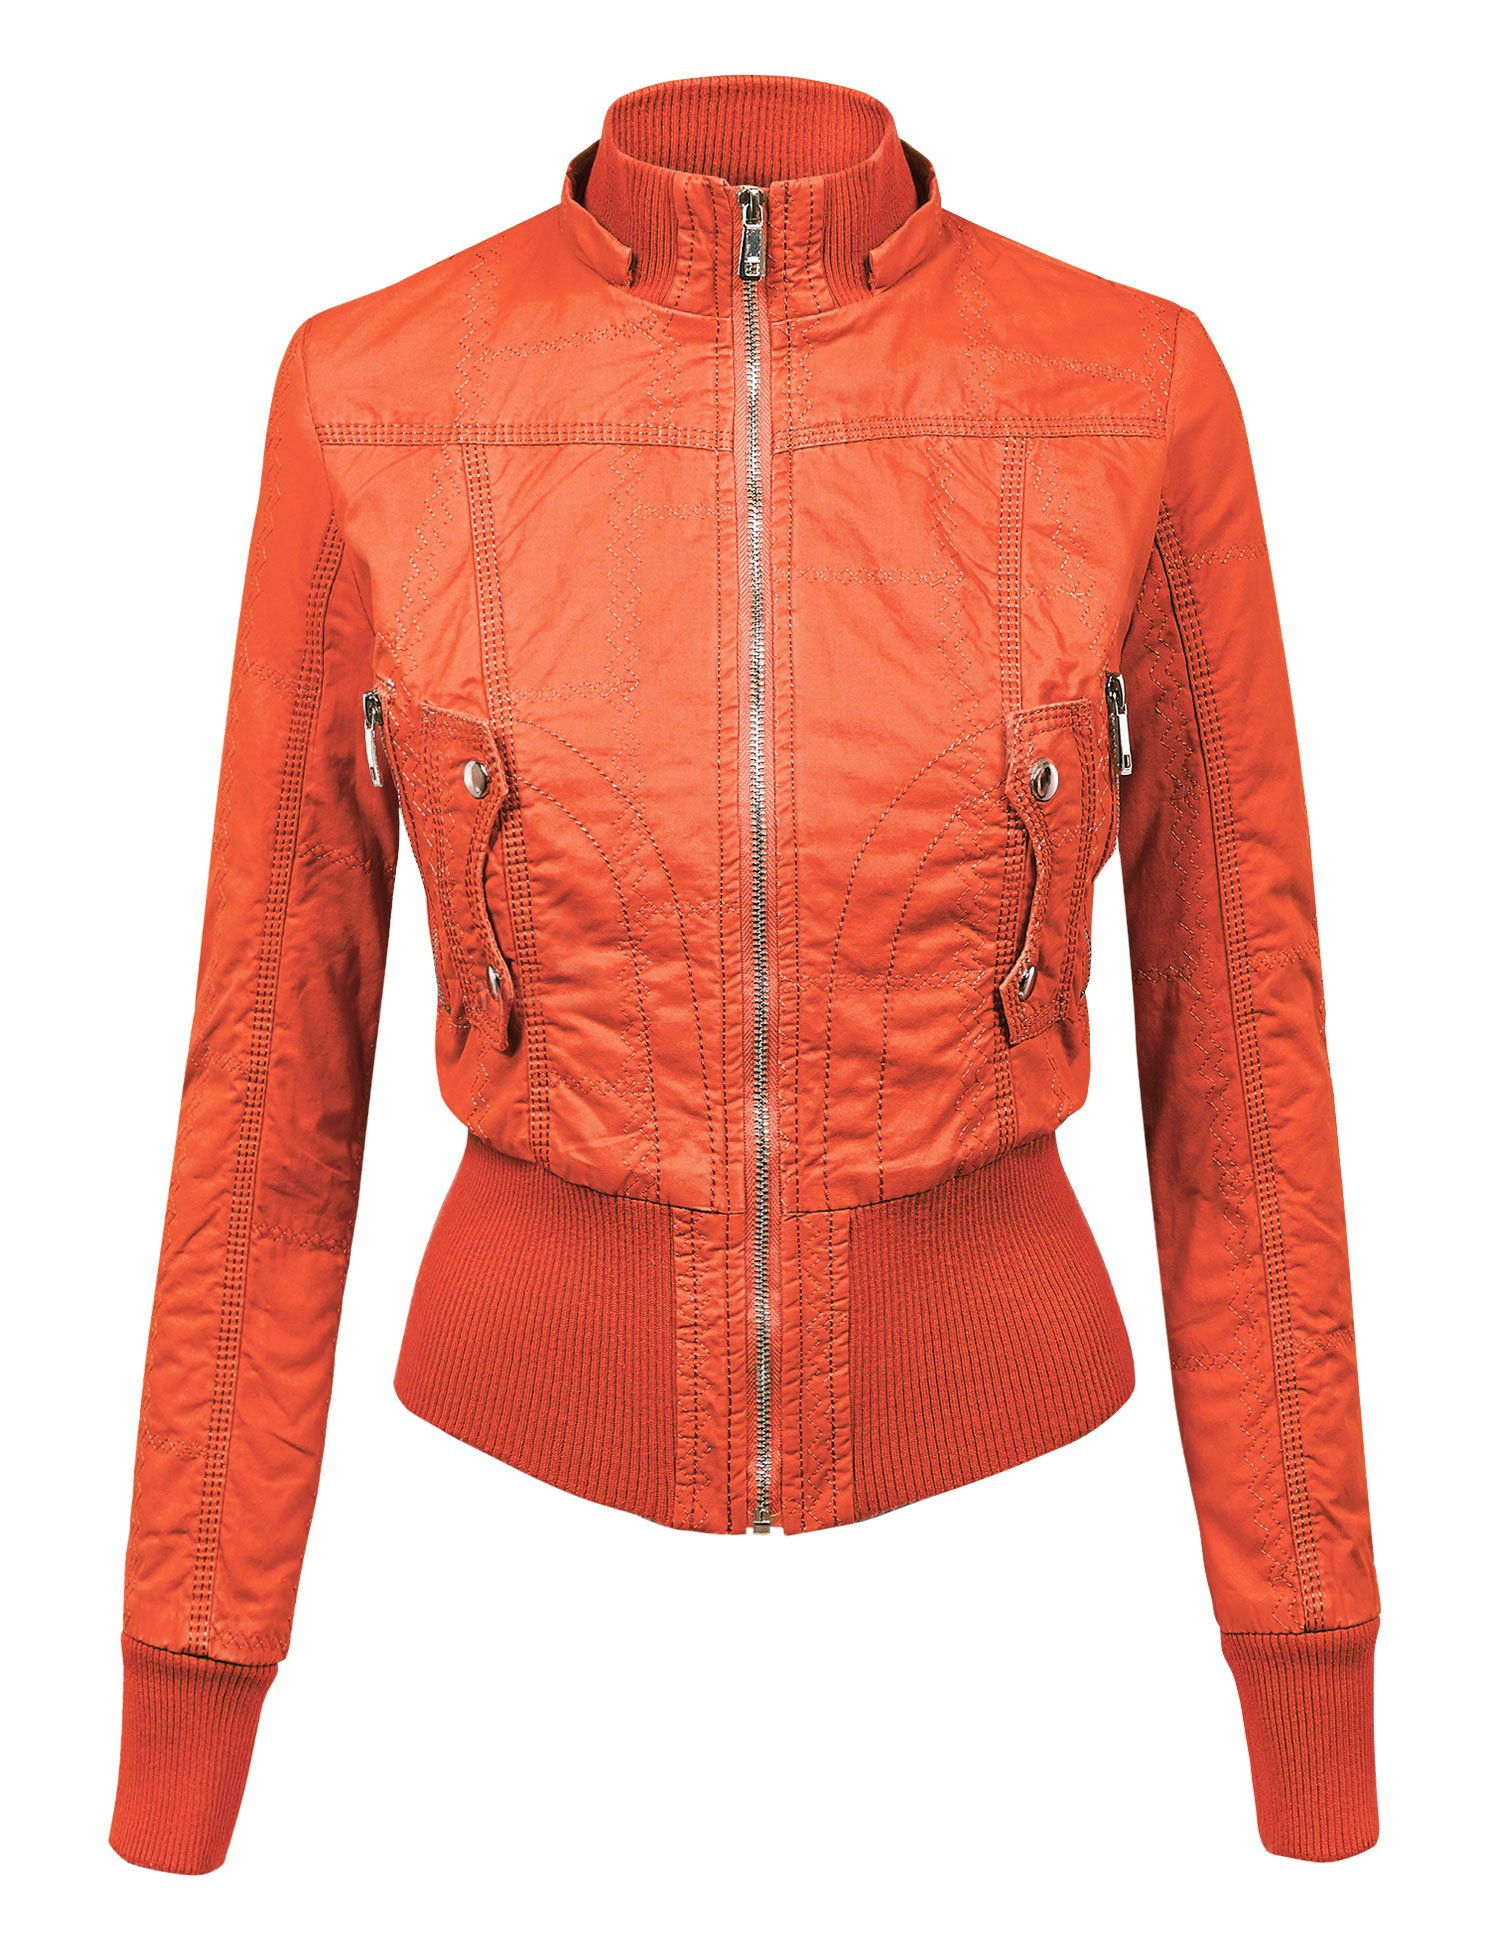 WJC1004 Womens Casual Inner Fleece Bomber Jacket with Removable Hoodie L CORAL by Lock and Love (Image #4)